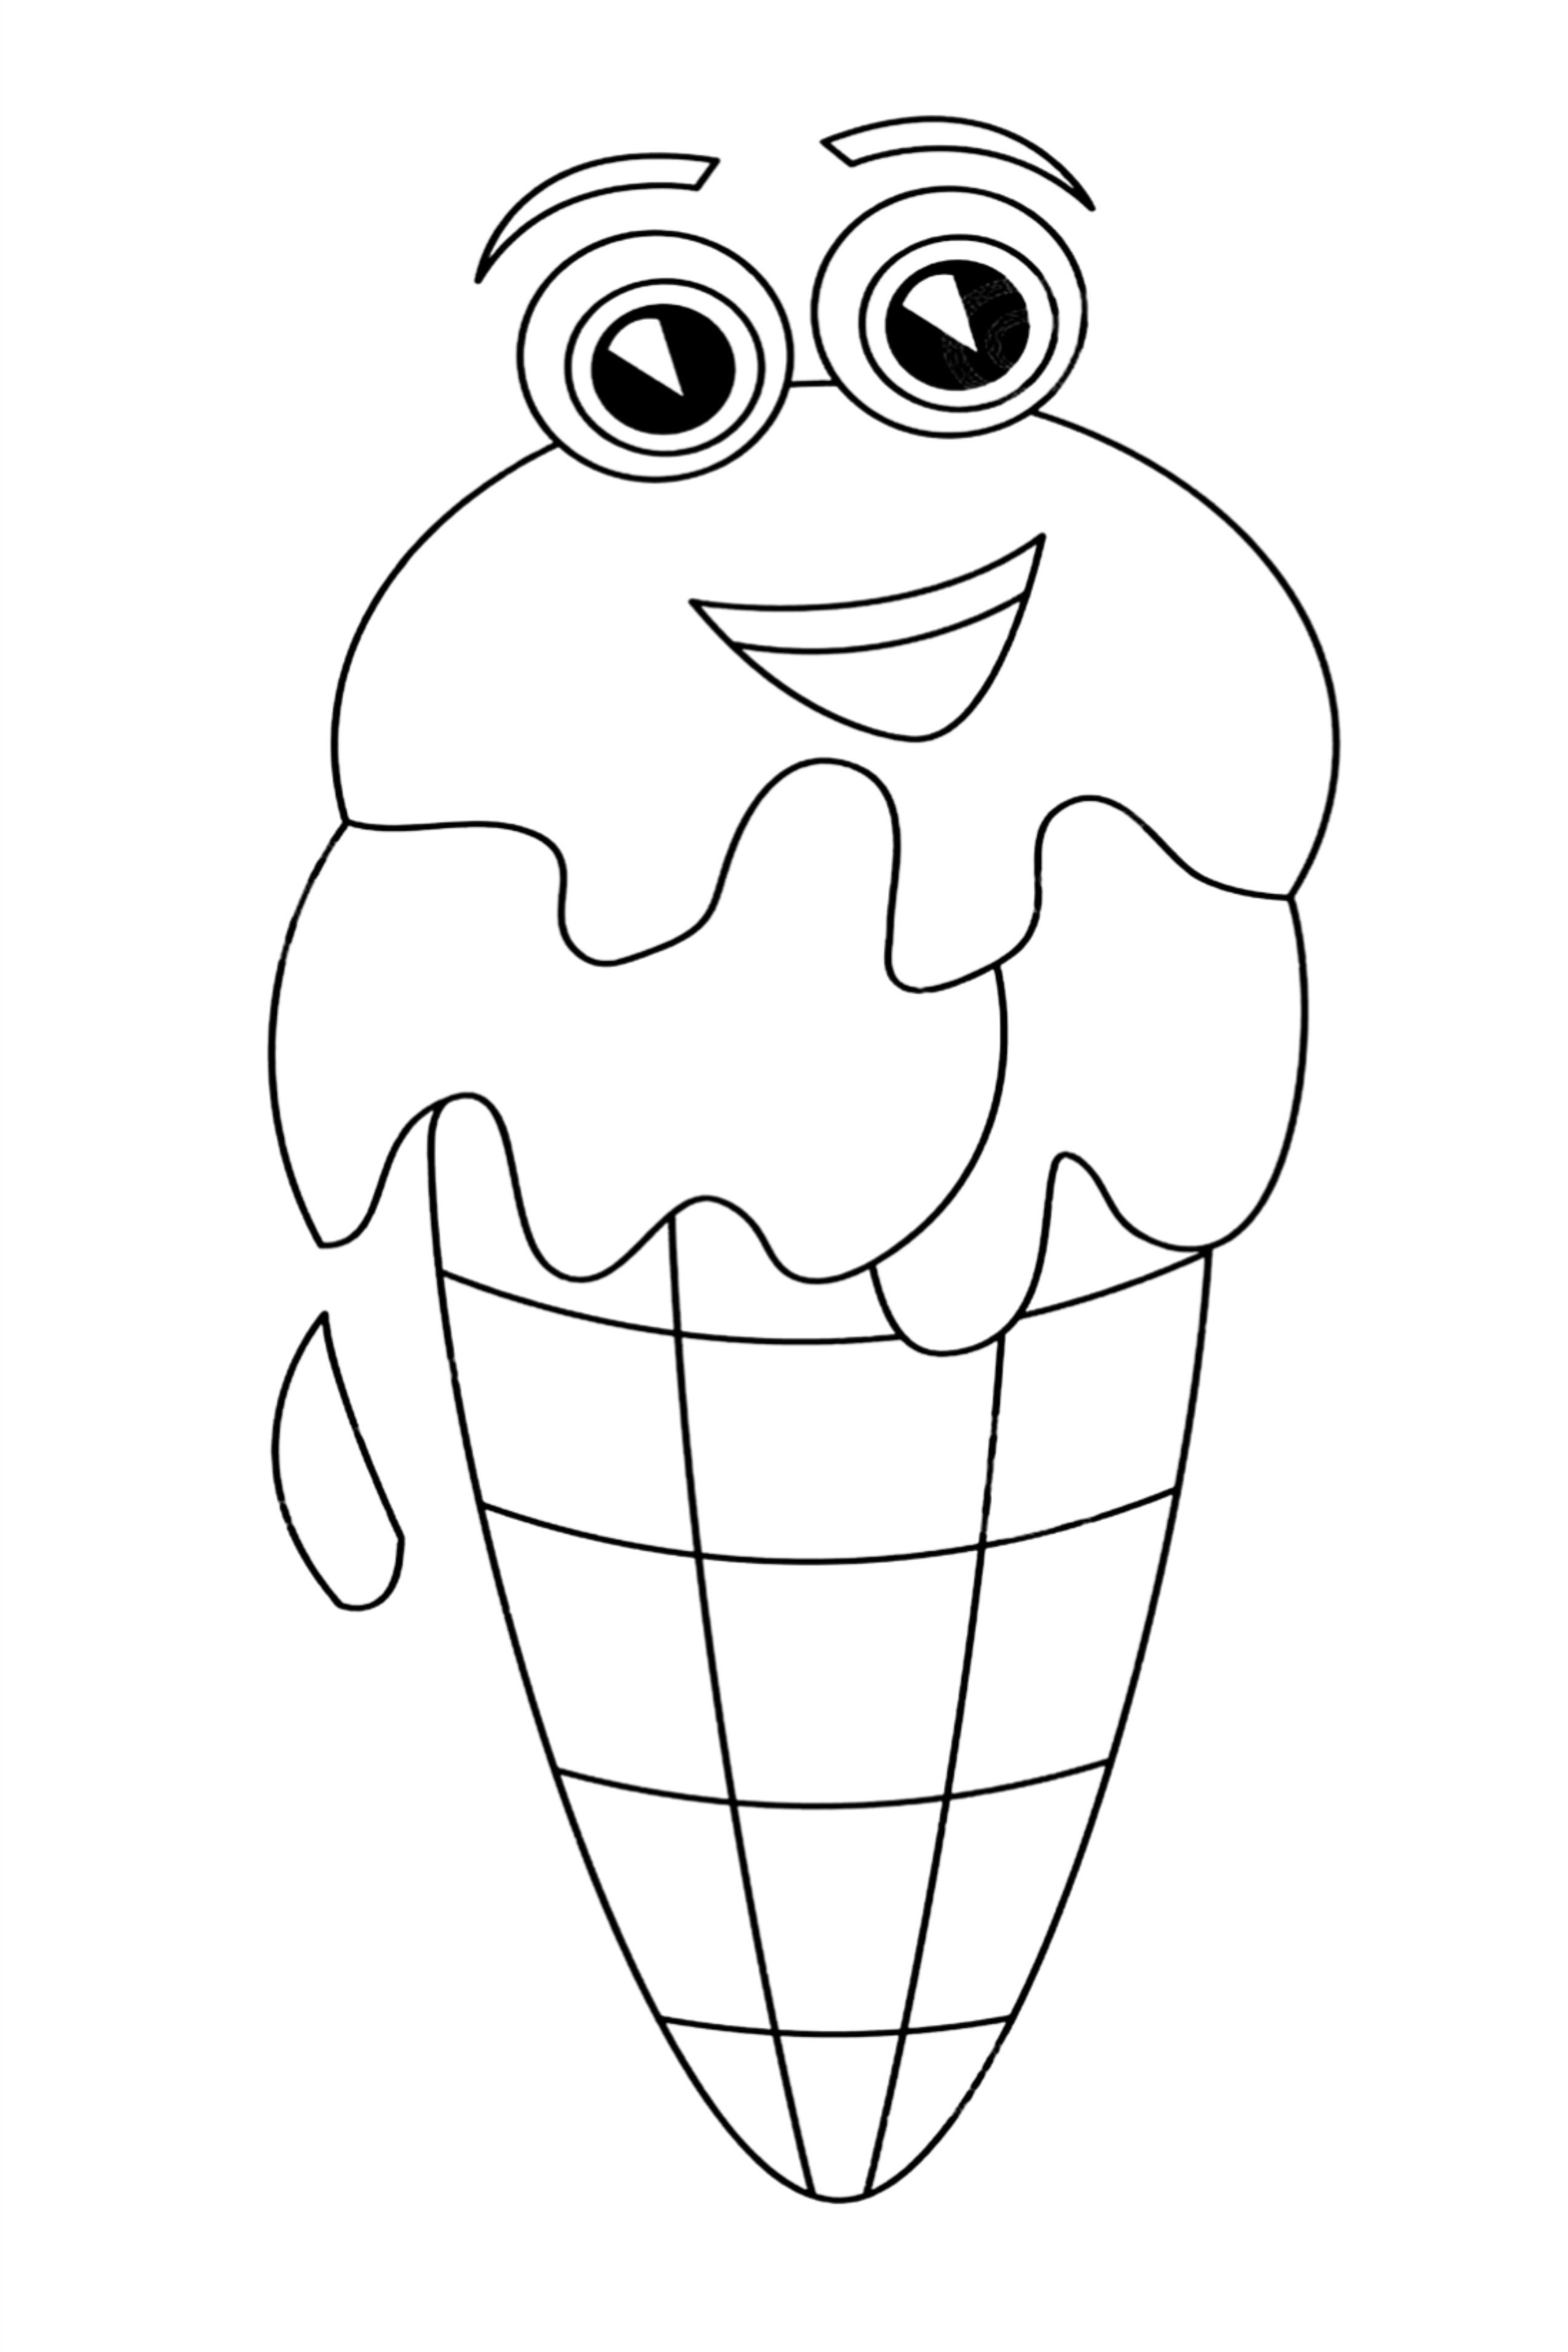 Cool Ice Cream Coloring Pages Pdf Printable Free Coloring Sheets Ice Cream Coloring Pages Ice Cream Cone Drawing Ice Cream Tattoo